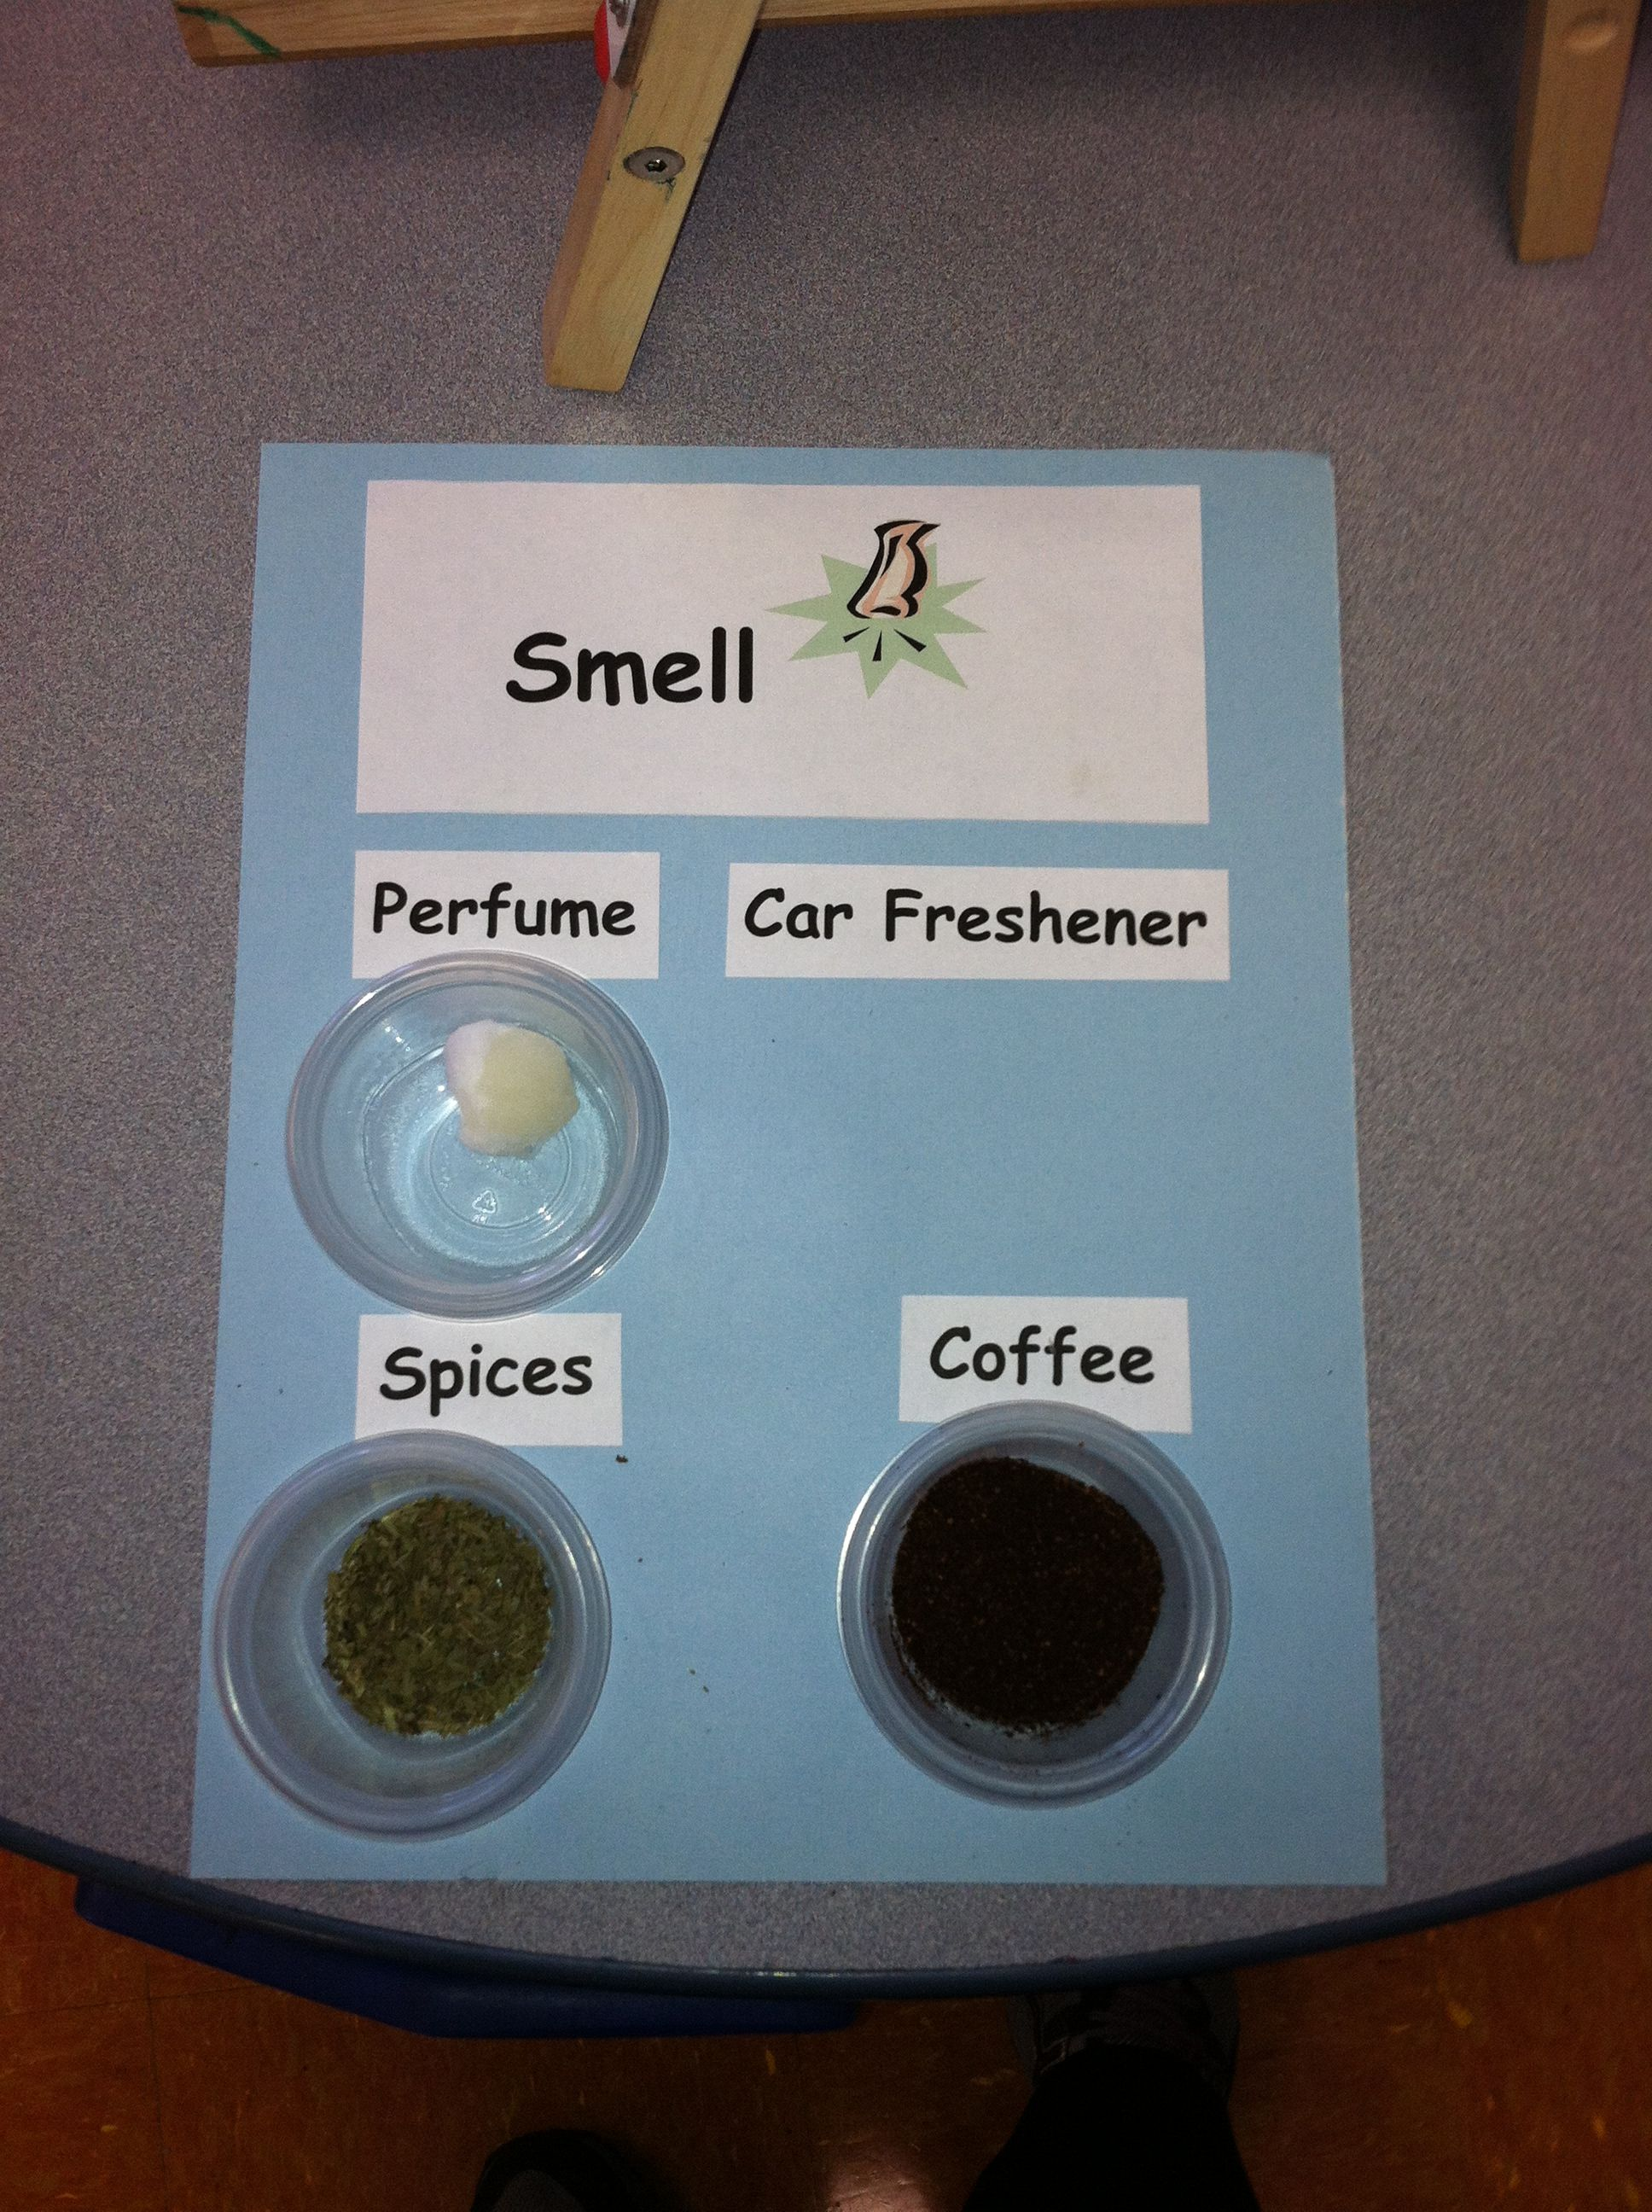 My 5 Senses Smell Activity Board